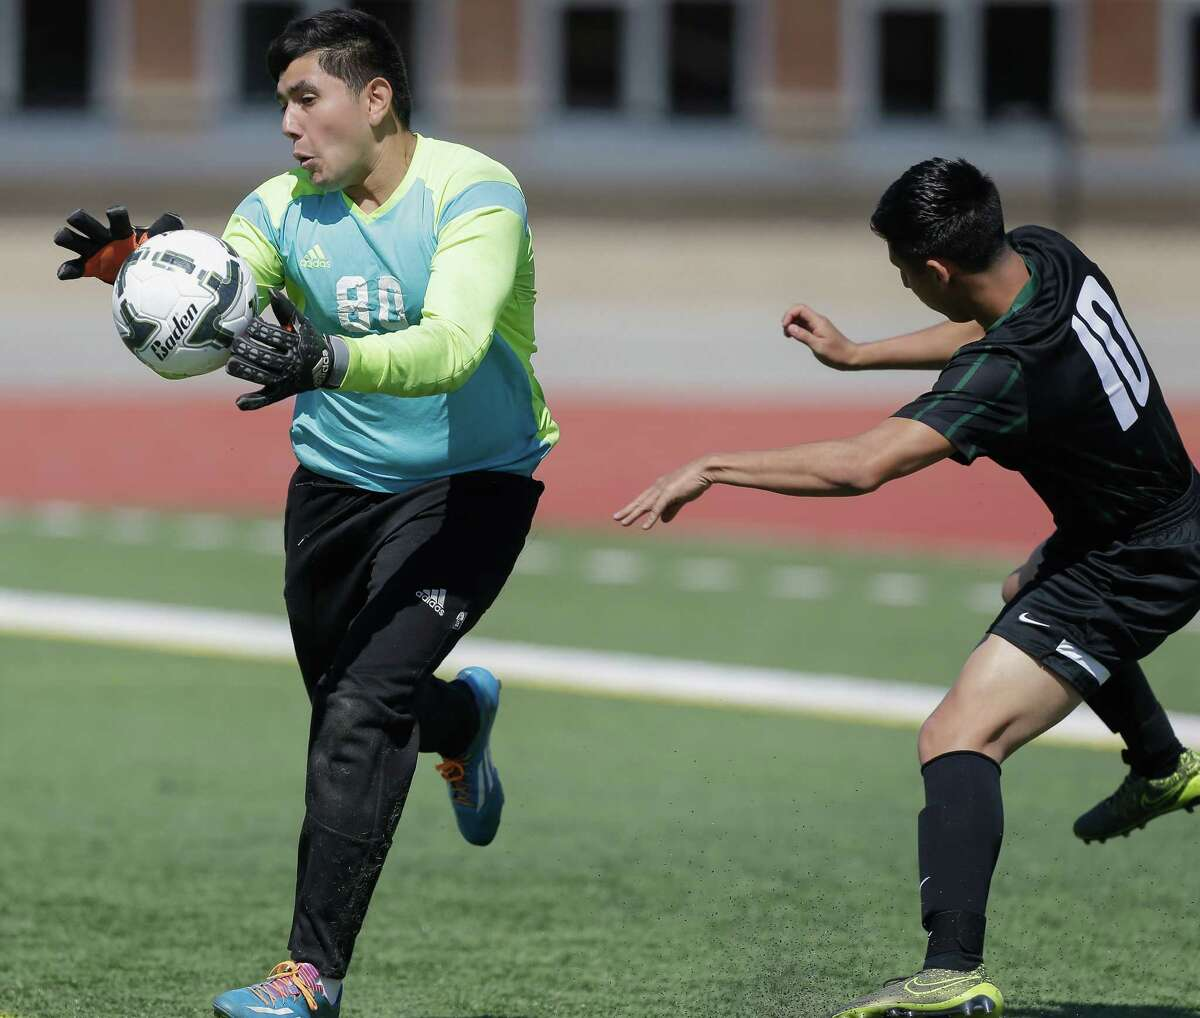 Angleton goalkeeper Jesus Ocampo (80) reaches the ball before John B. Connally's Jerson De La Rosa (10) during the Class 5A Region III soccer tournament semifinals on Friday, March 8, 2016, in Humble, Texas.